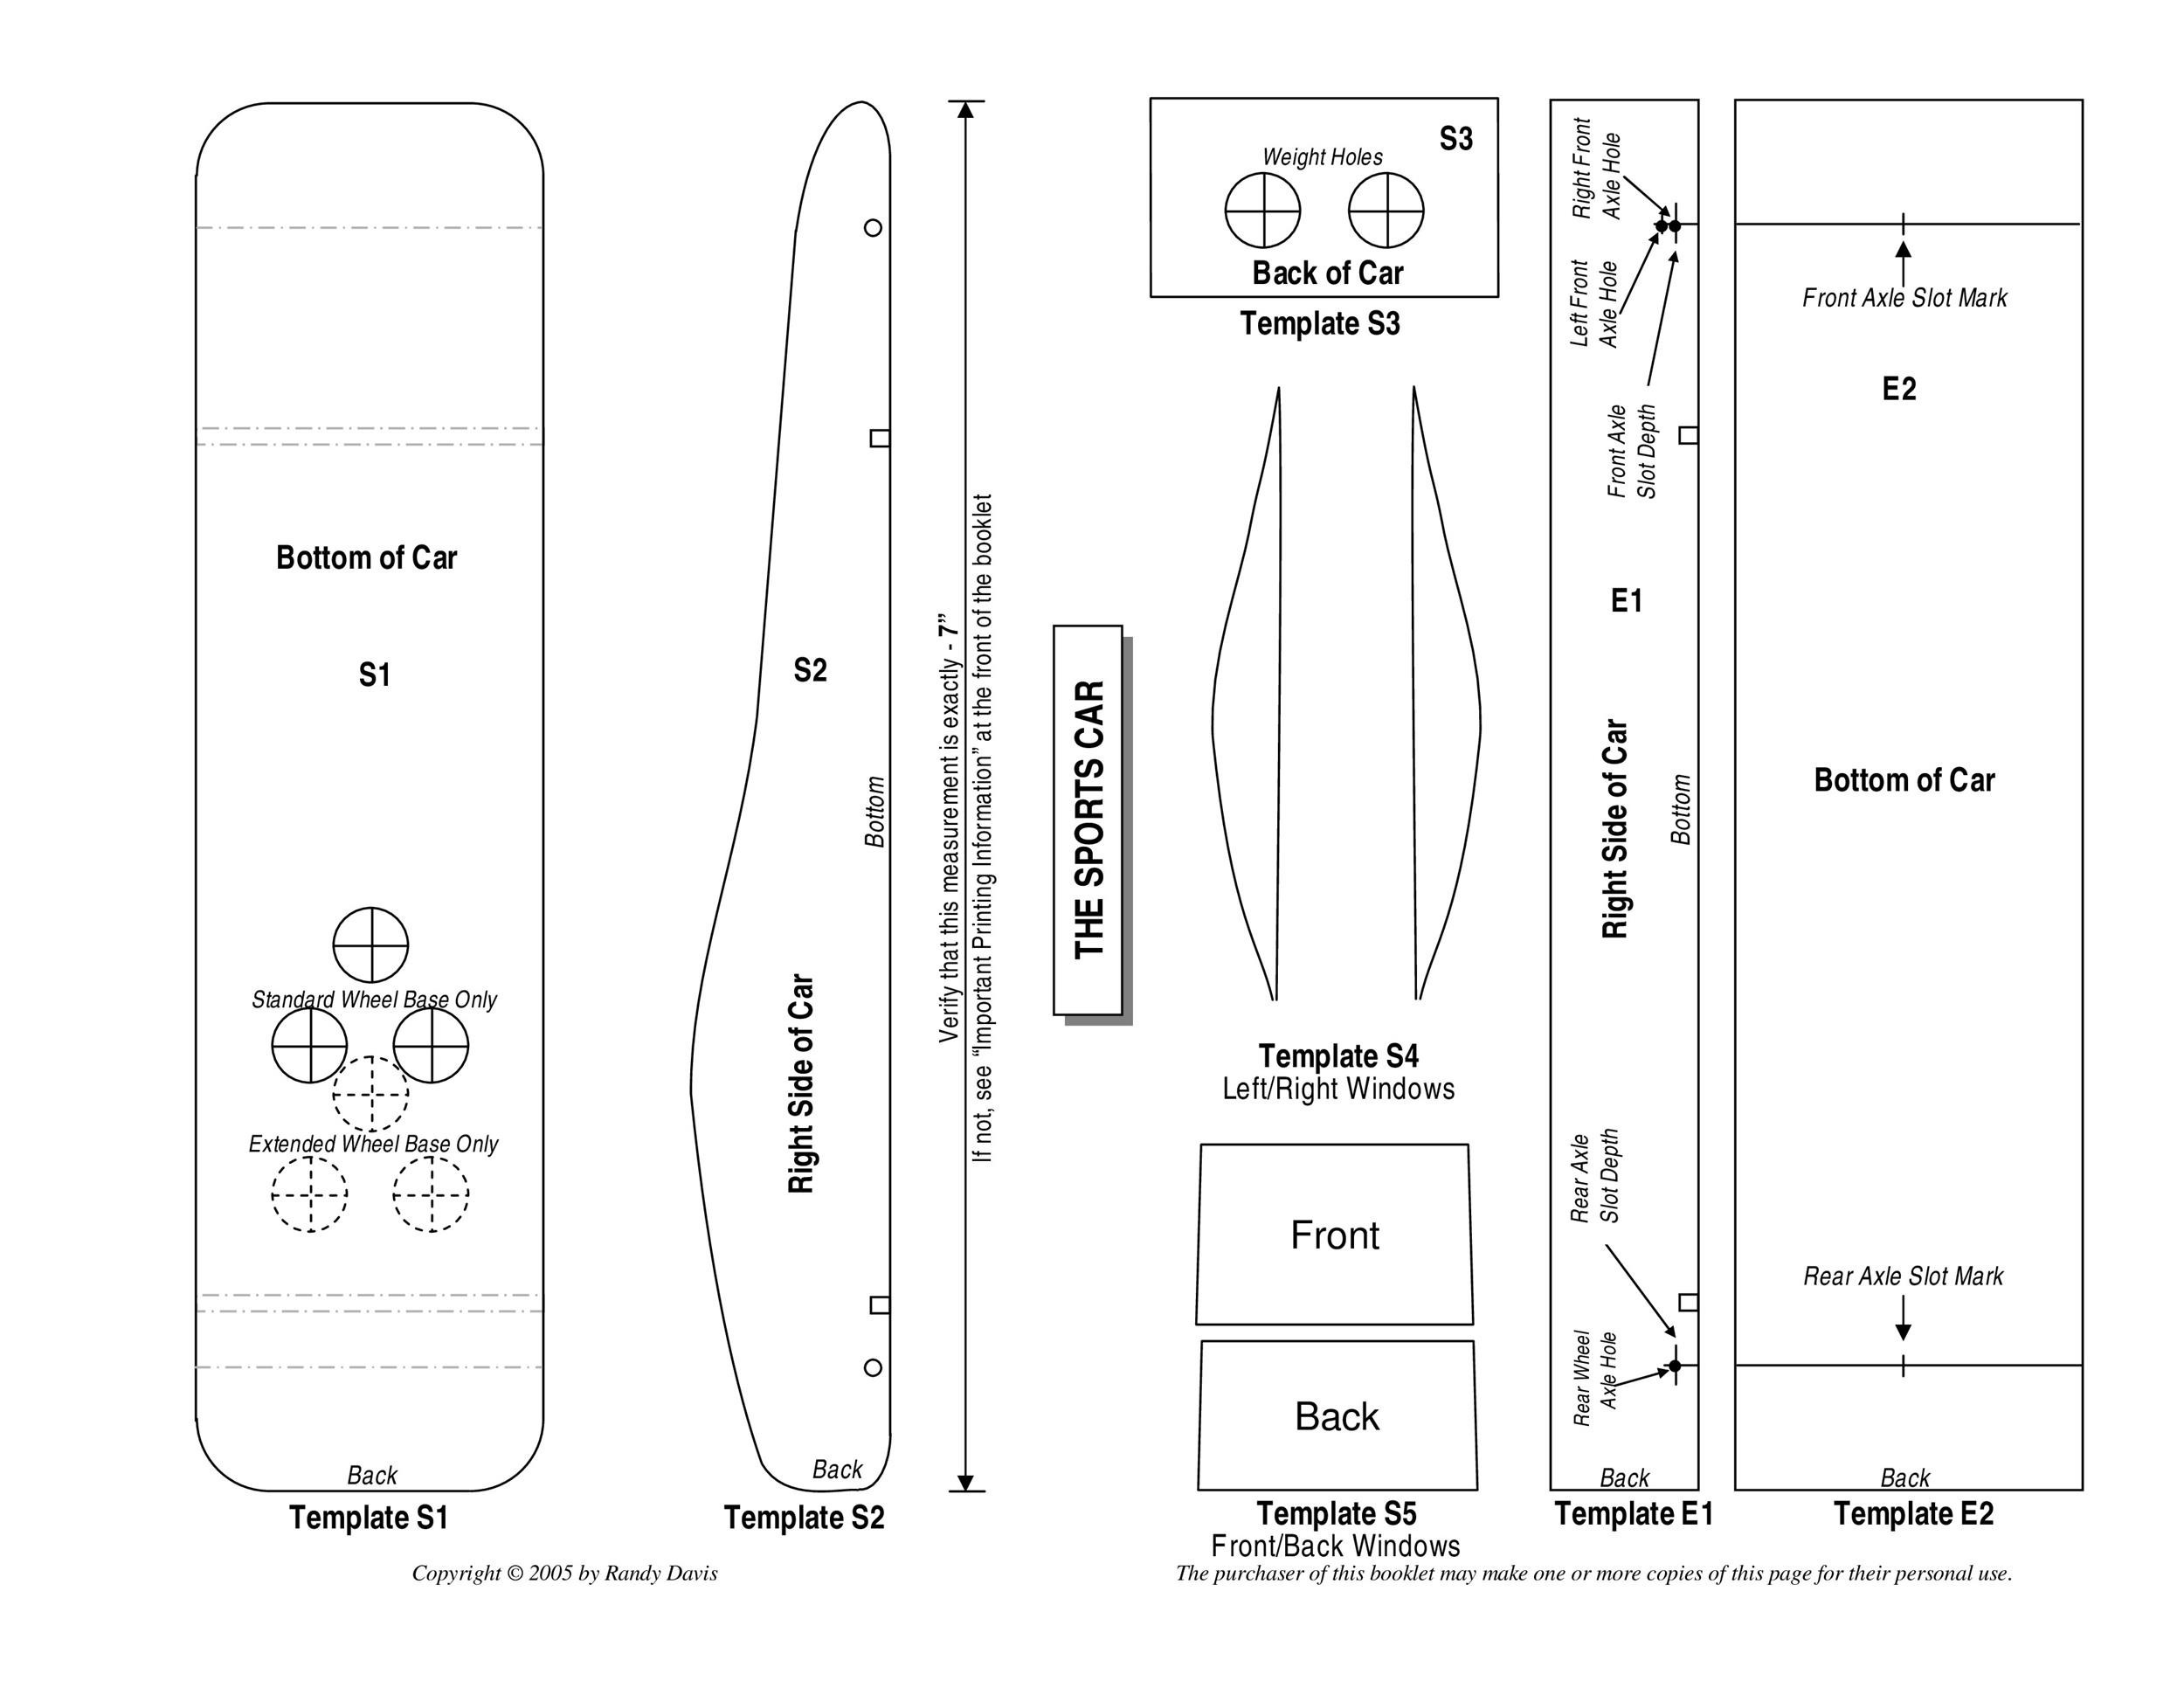 photograph regarding Free Pinewood Derby Templates Printable named 39 Wonderful Pinewood Derby Vehicle Plans Templates ᐅ